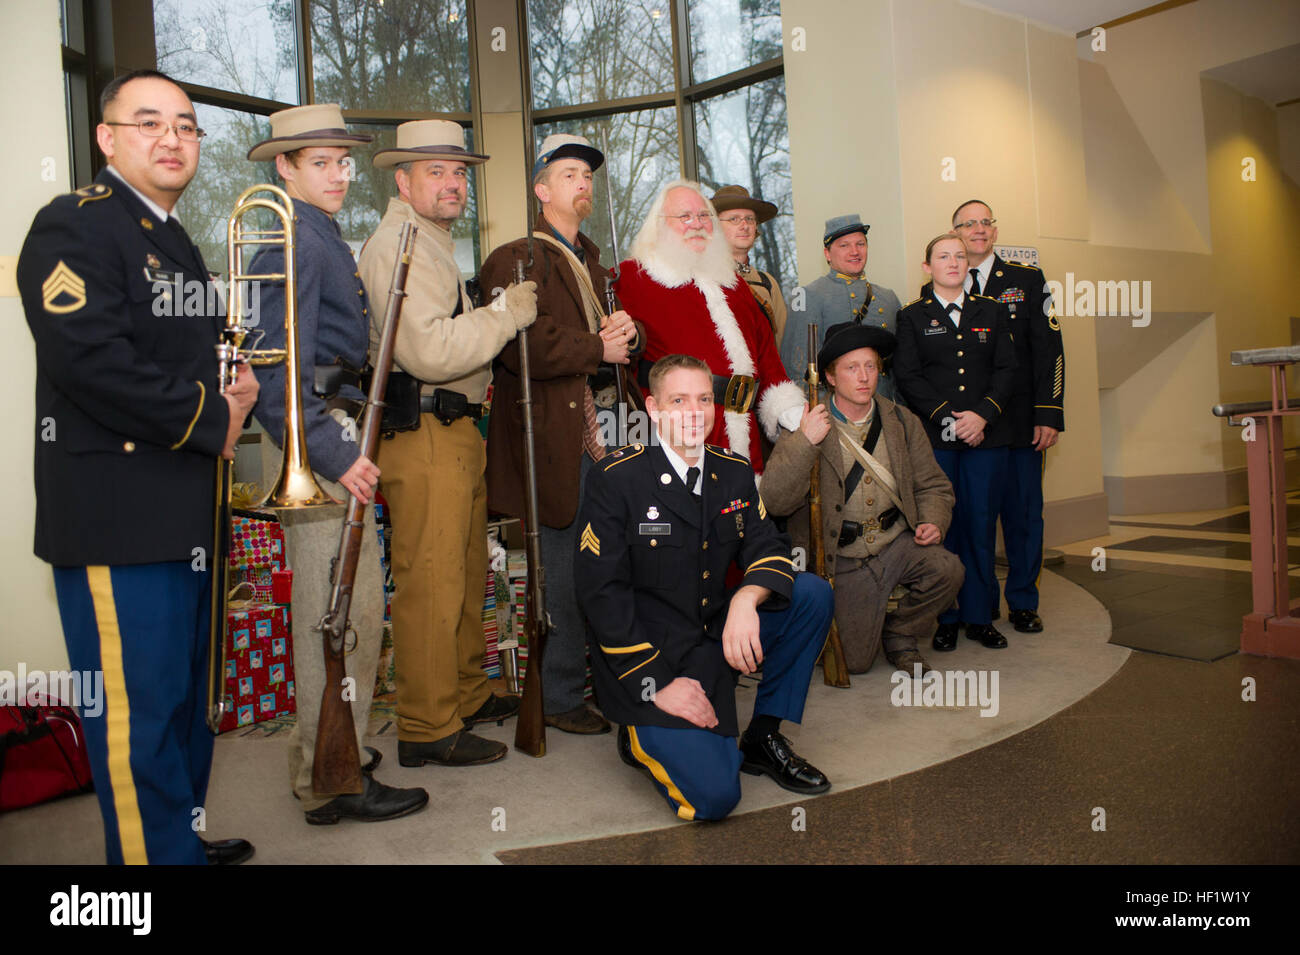 ATLANTA HISTORY CENTER AND MUSEUM, Atlanta, Ga., Dec 14, 2013 – Santa's helpers arrived in the form of Soldier and - Stock Image